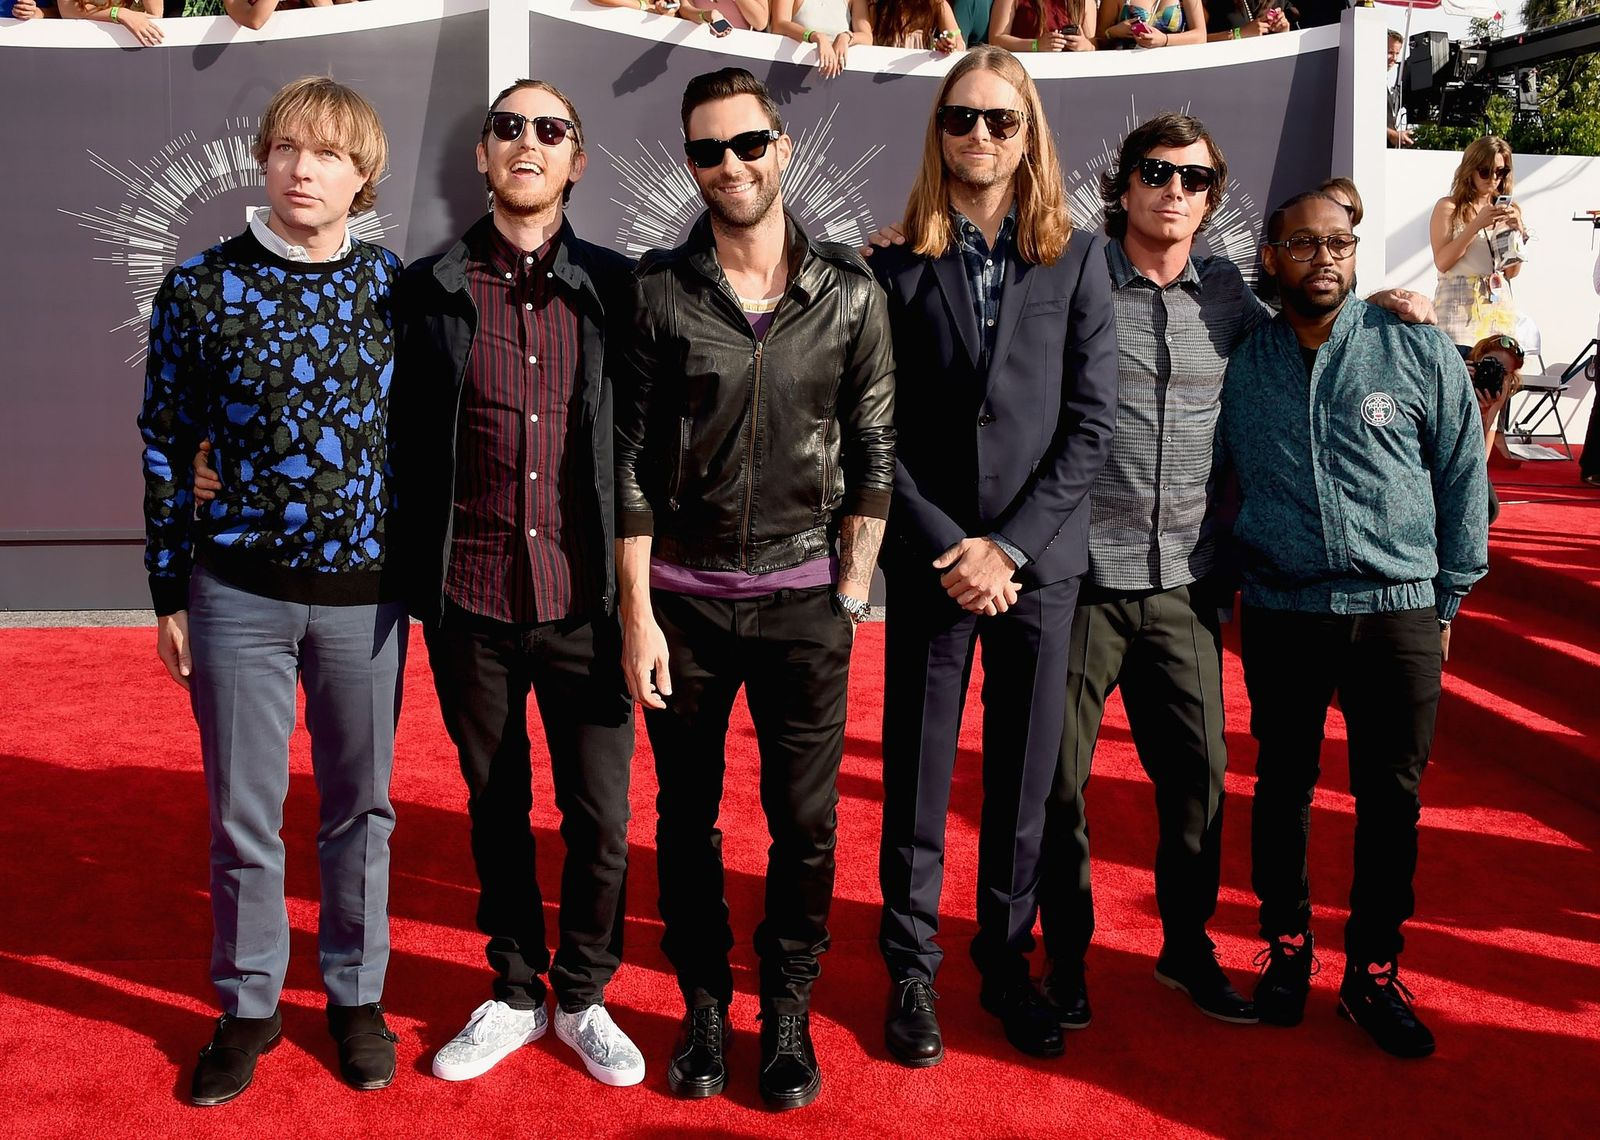 Maroon 5 at the MTV Video Music Awards on August 24, 2014, in Inglewood, California | Photo: Steve Granitz/WireImage/Getty Images